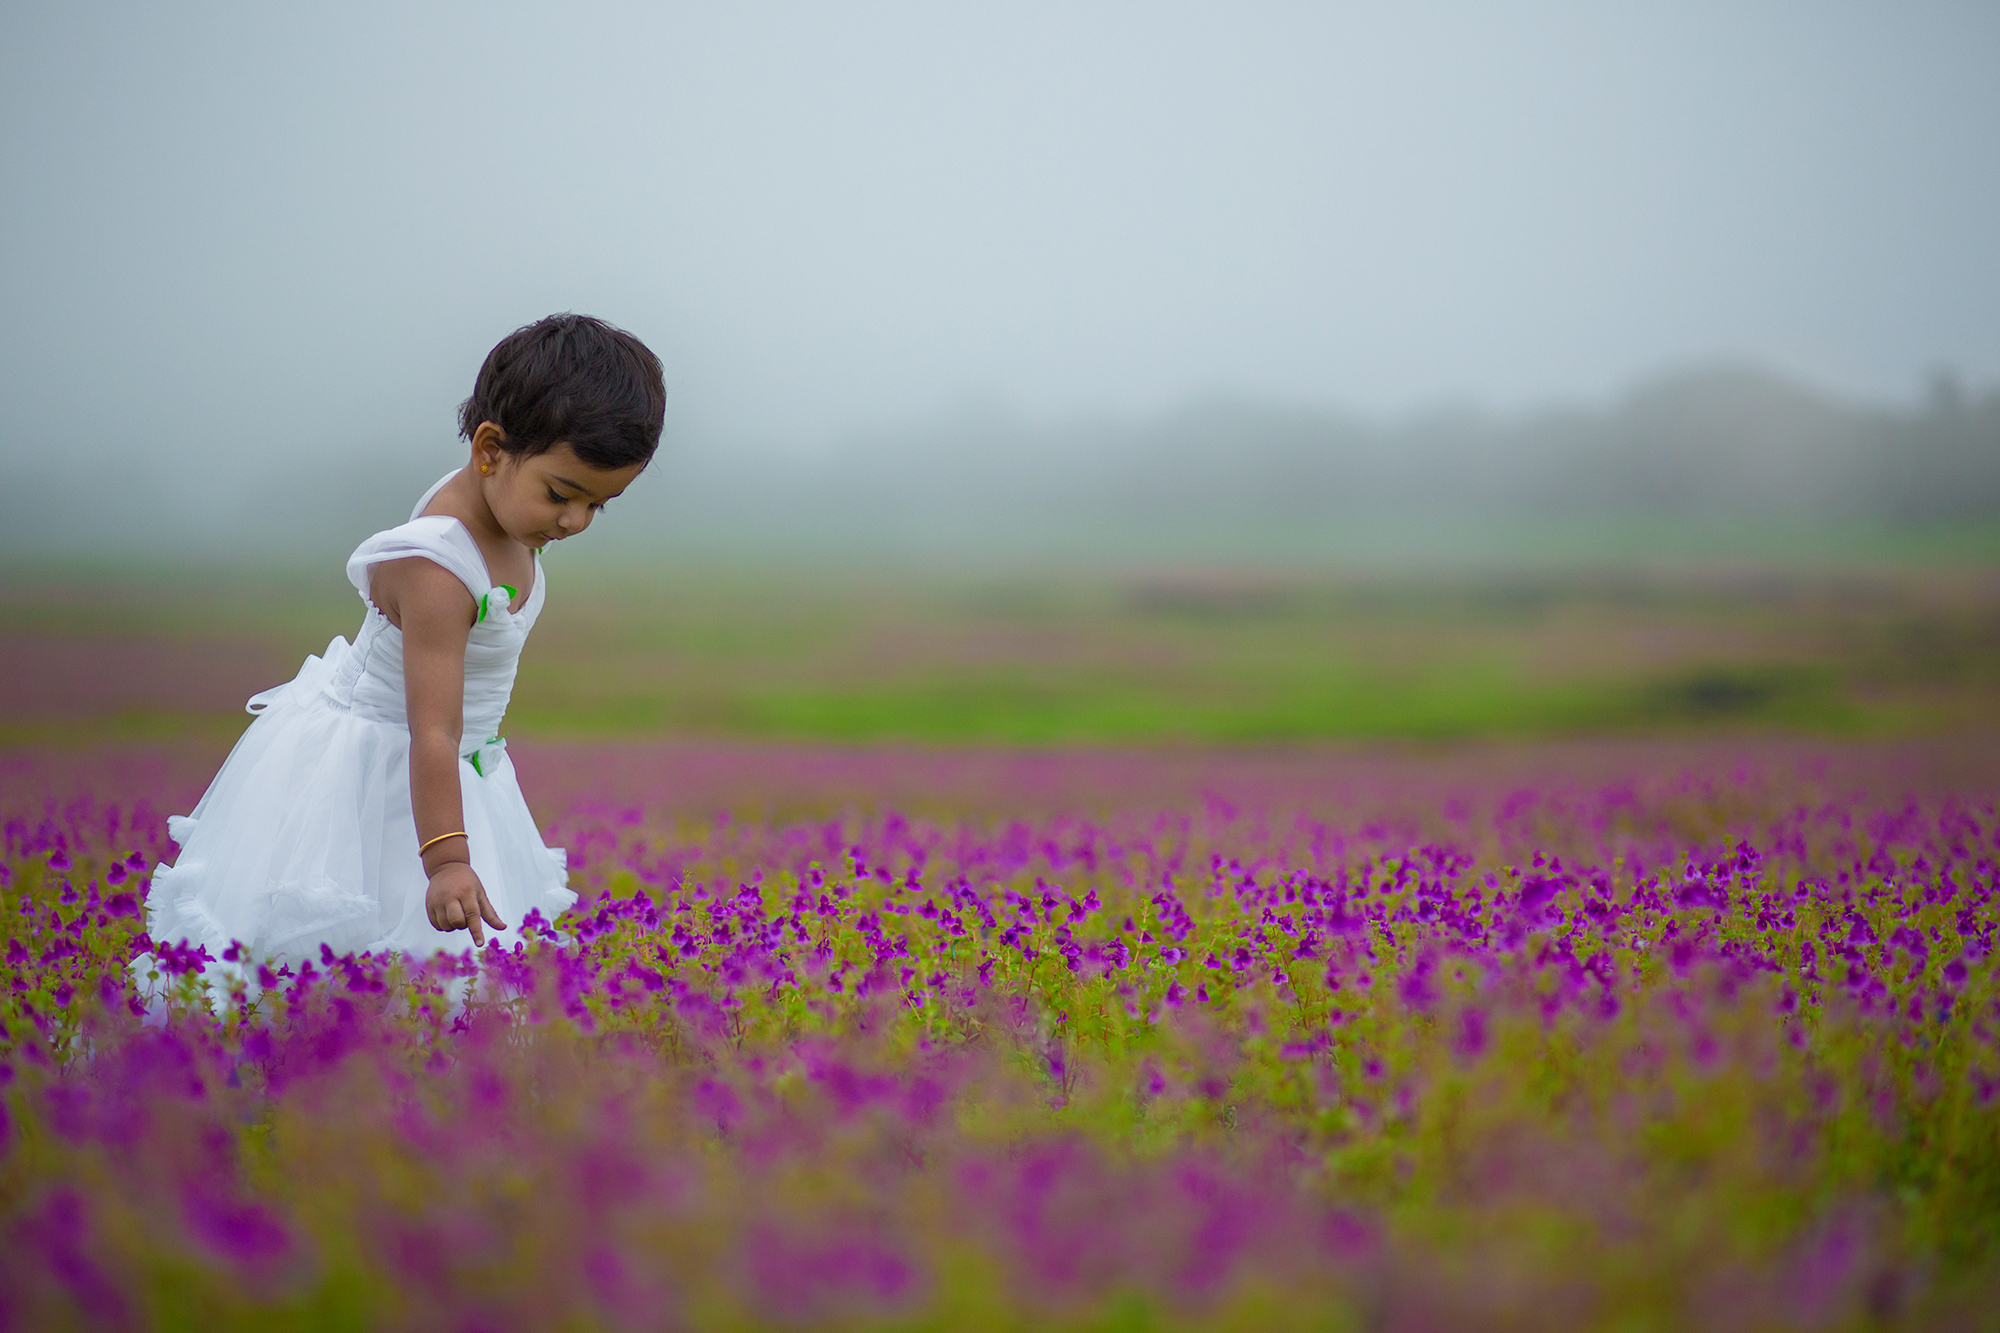 Shot this photograph of my niece during the last season of for bloom at Kaas.